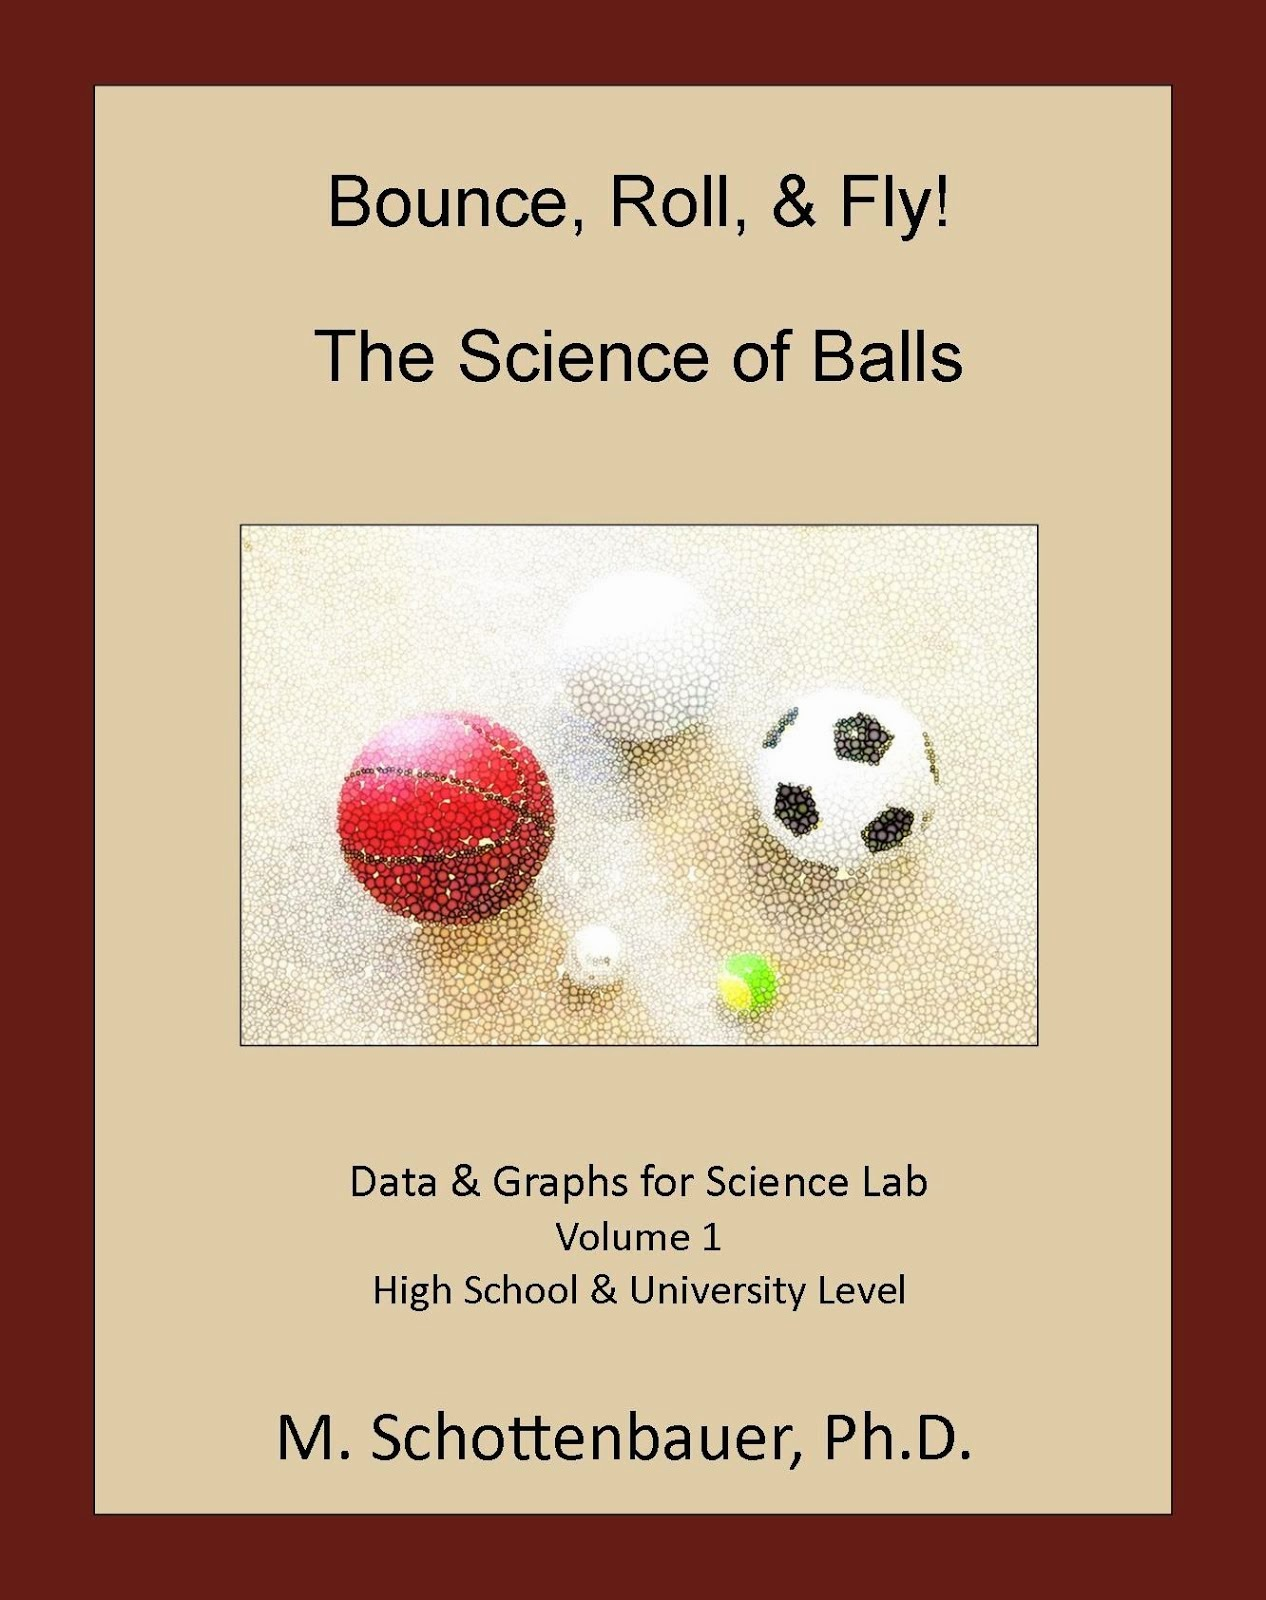 Science of Balls